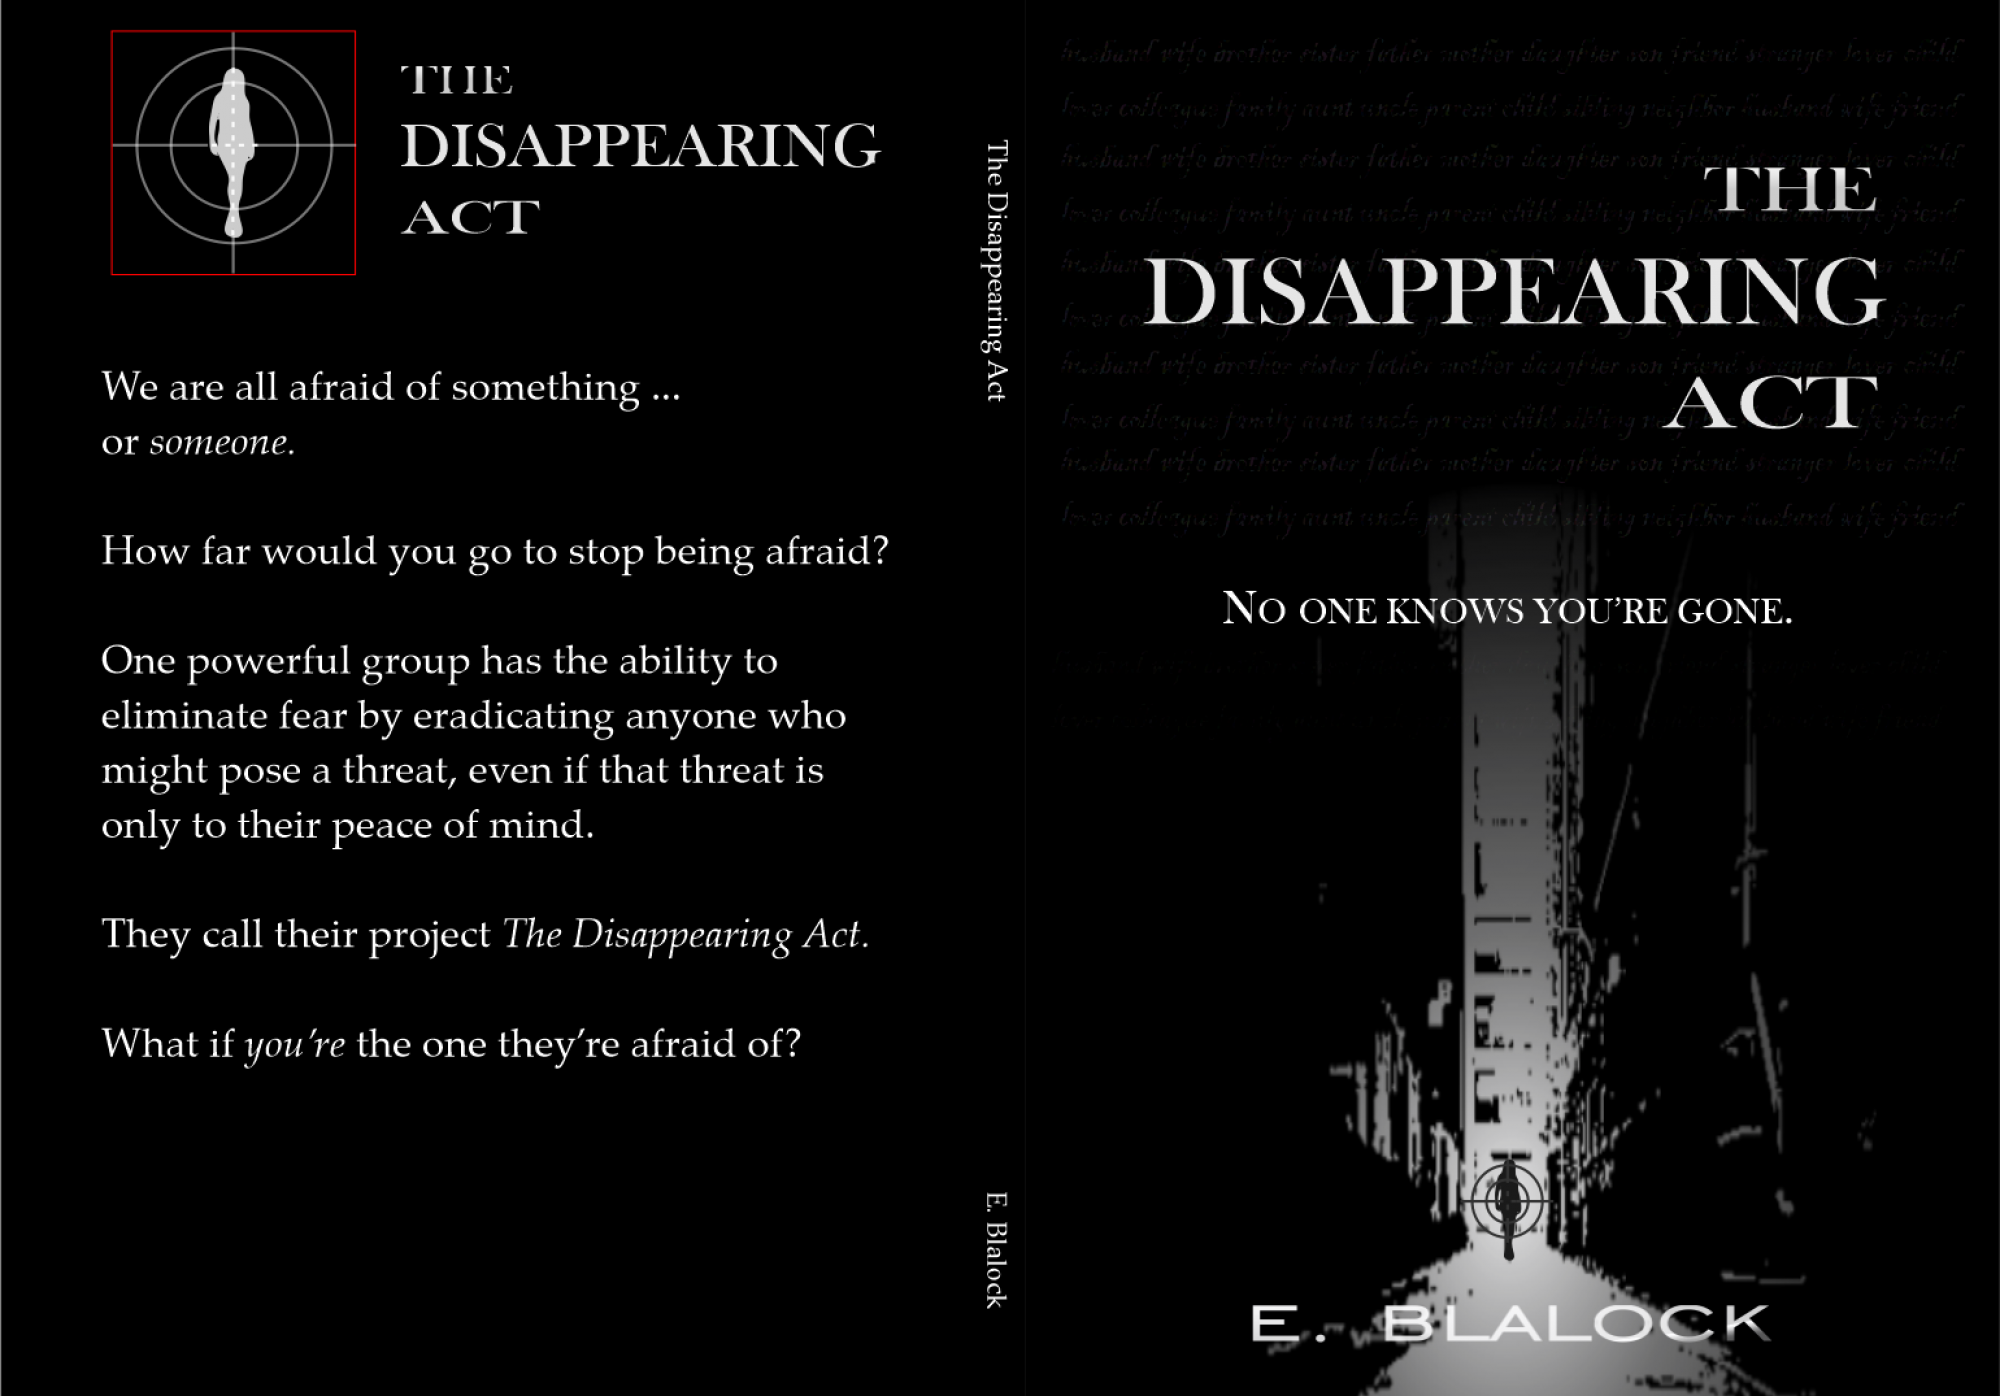 cropped-disact-cover-03012021-v3.png